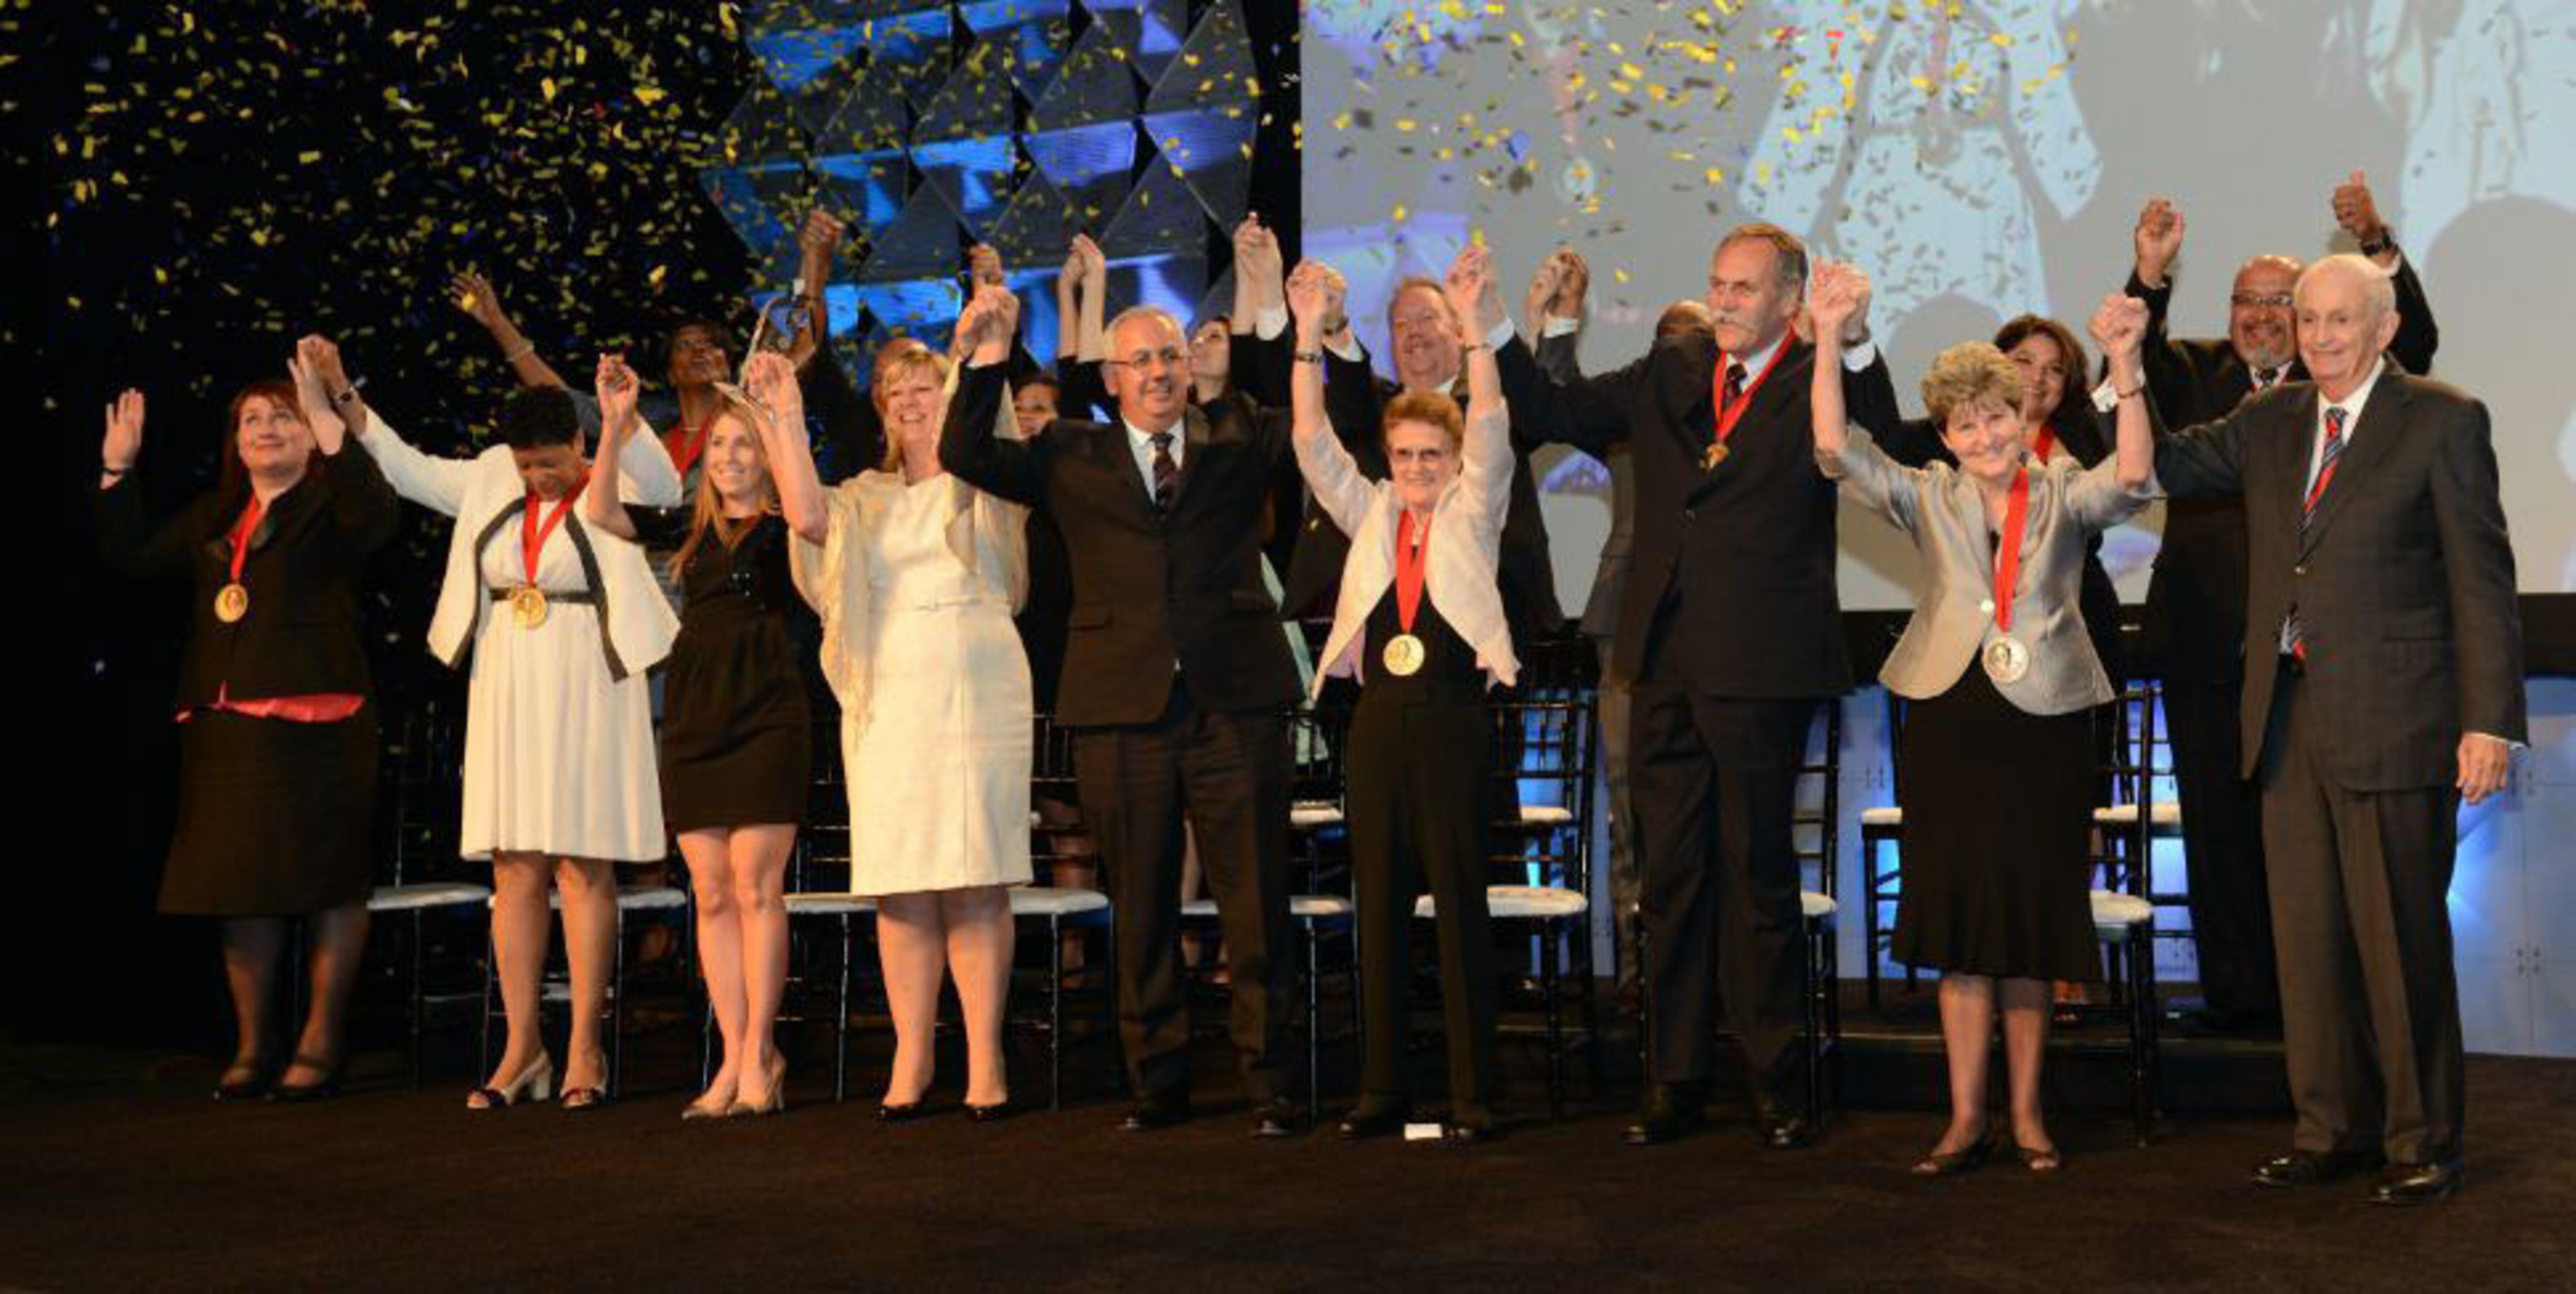 Marriott International honors ten associates from around the world with its highest honor, the J. Willard Marriott Award of Excellence.  (PRNewsFoto/Marriott International, Inc.)